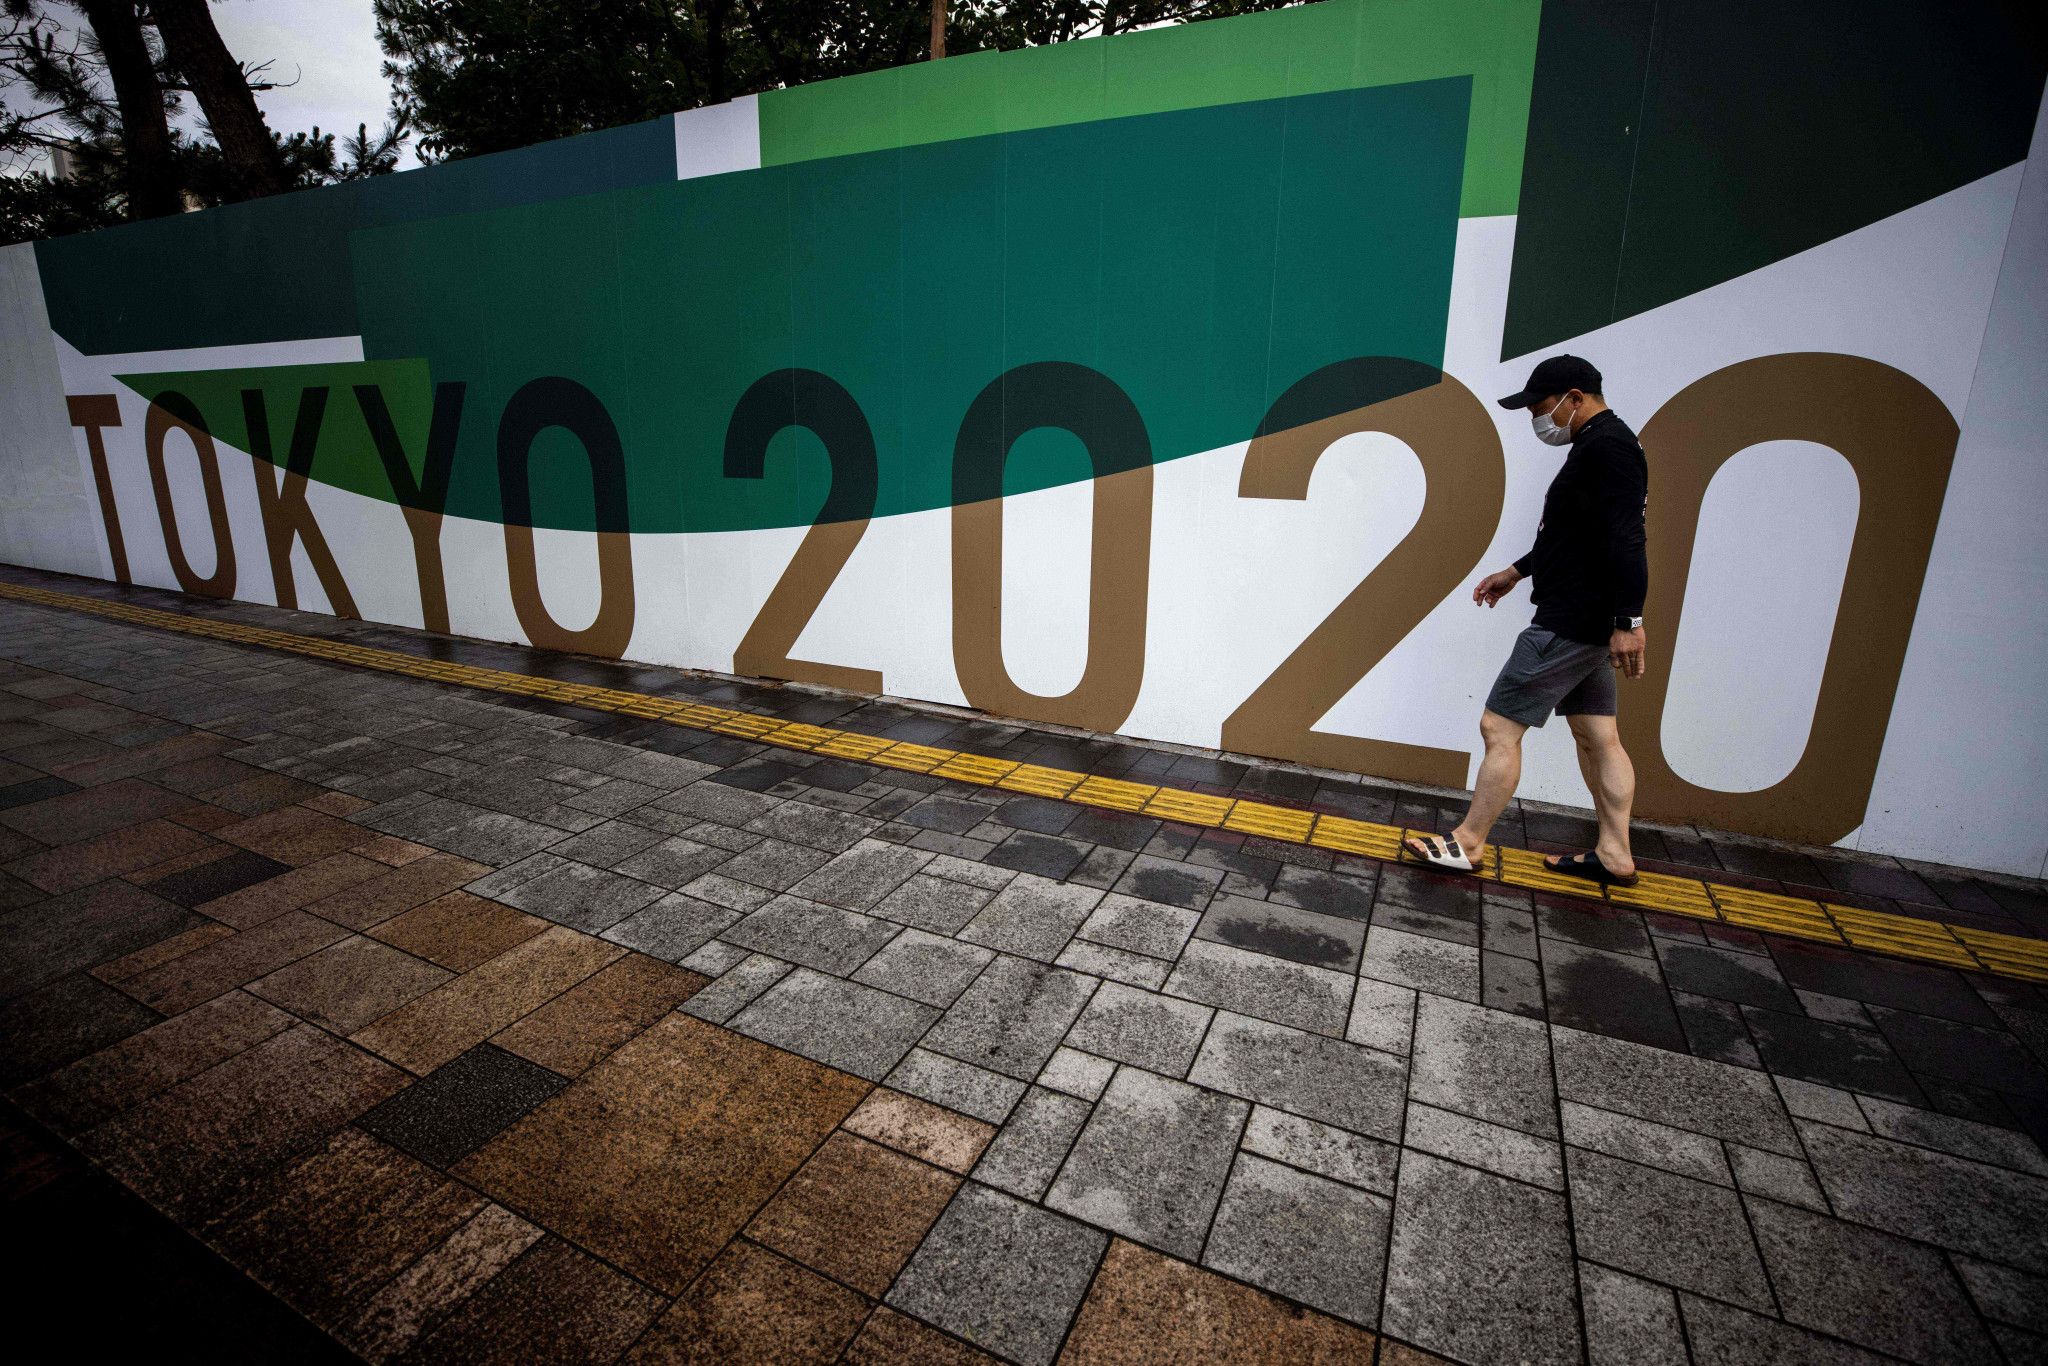 Tokyo 2020 could prevent fans from attending evening events at Olympics